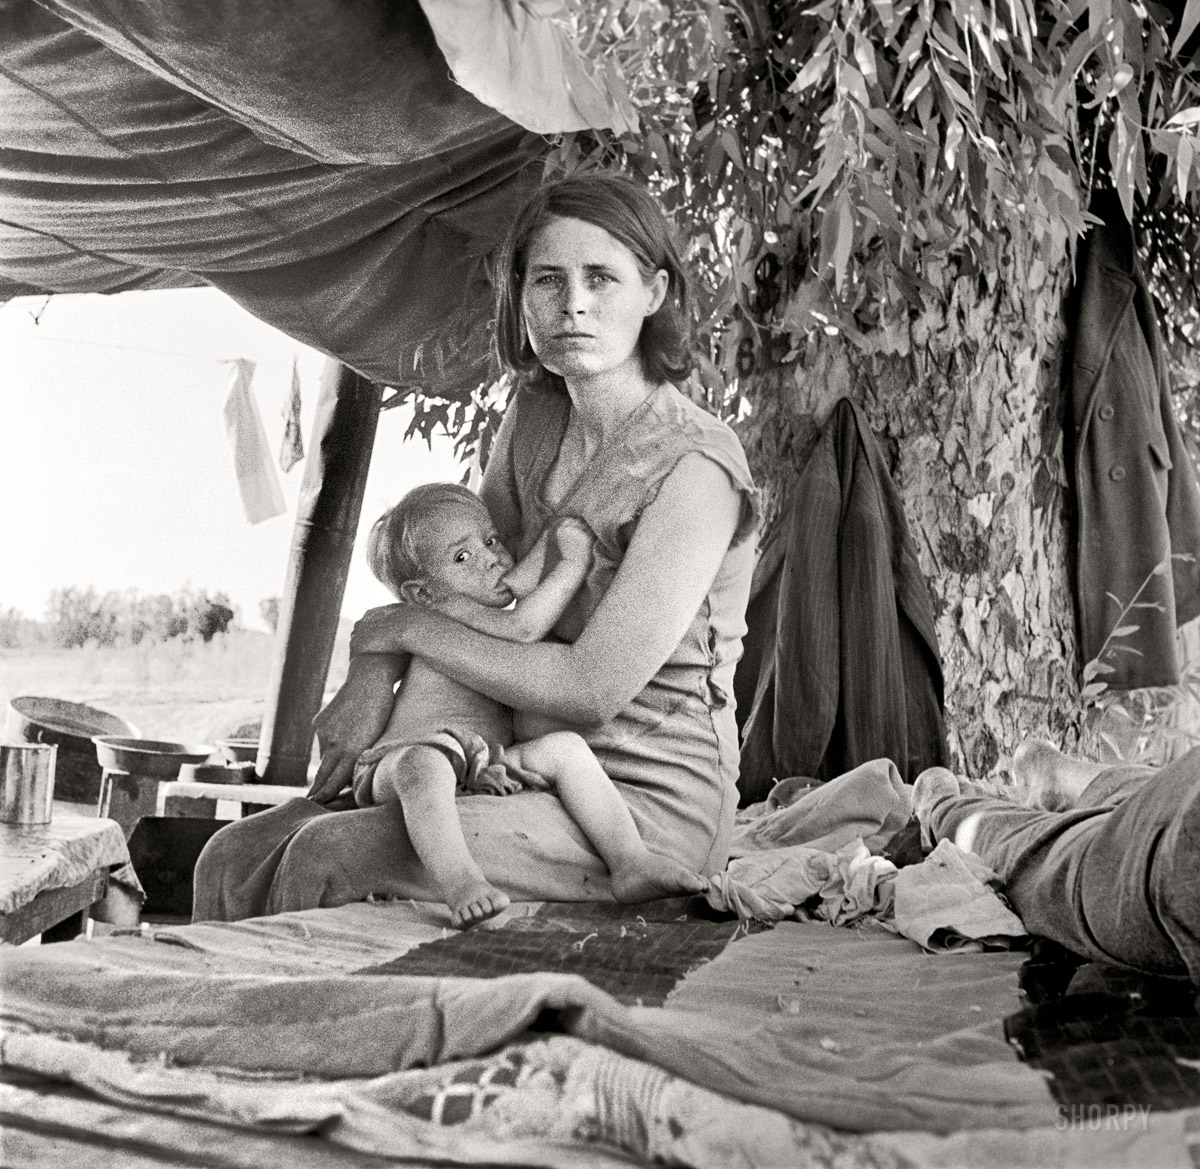 https://i1.wp.com/inspirationhut.net/wp-content/uploads/2012/10/dorothea-lange-photography-large-101.jpg